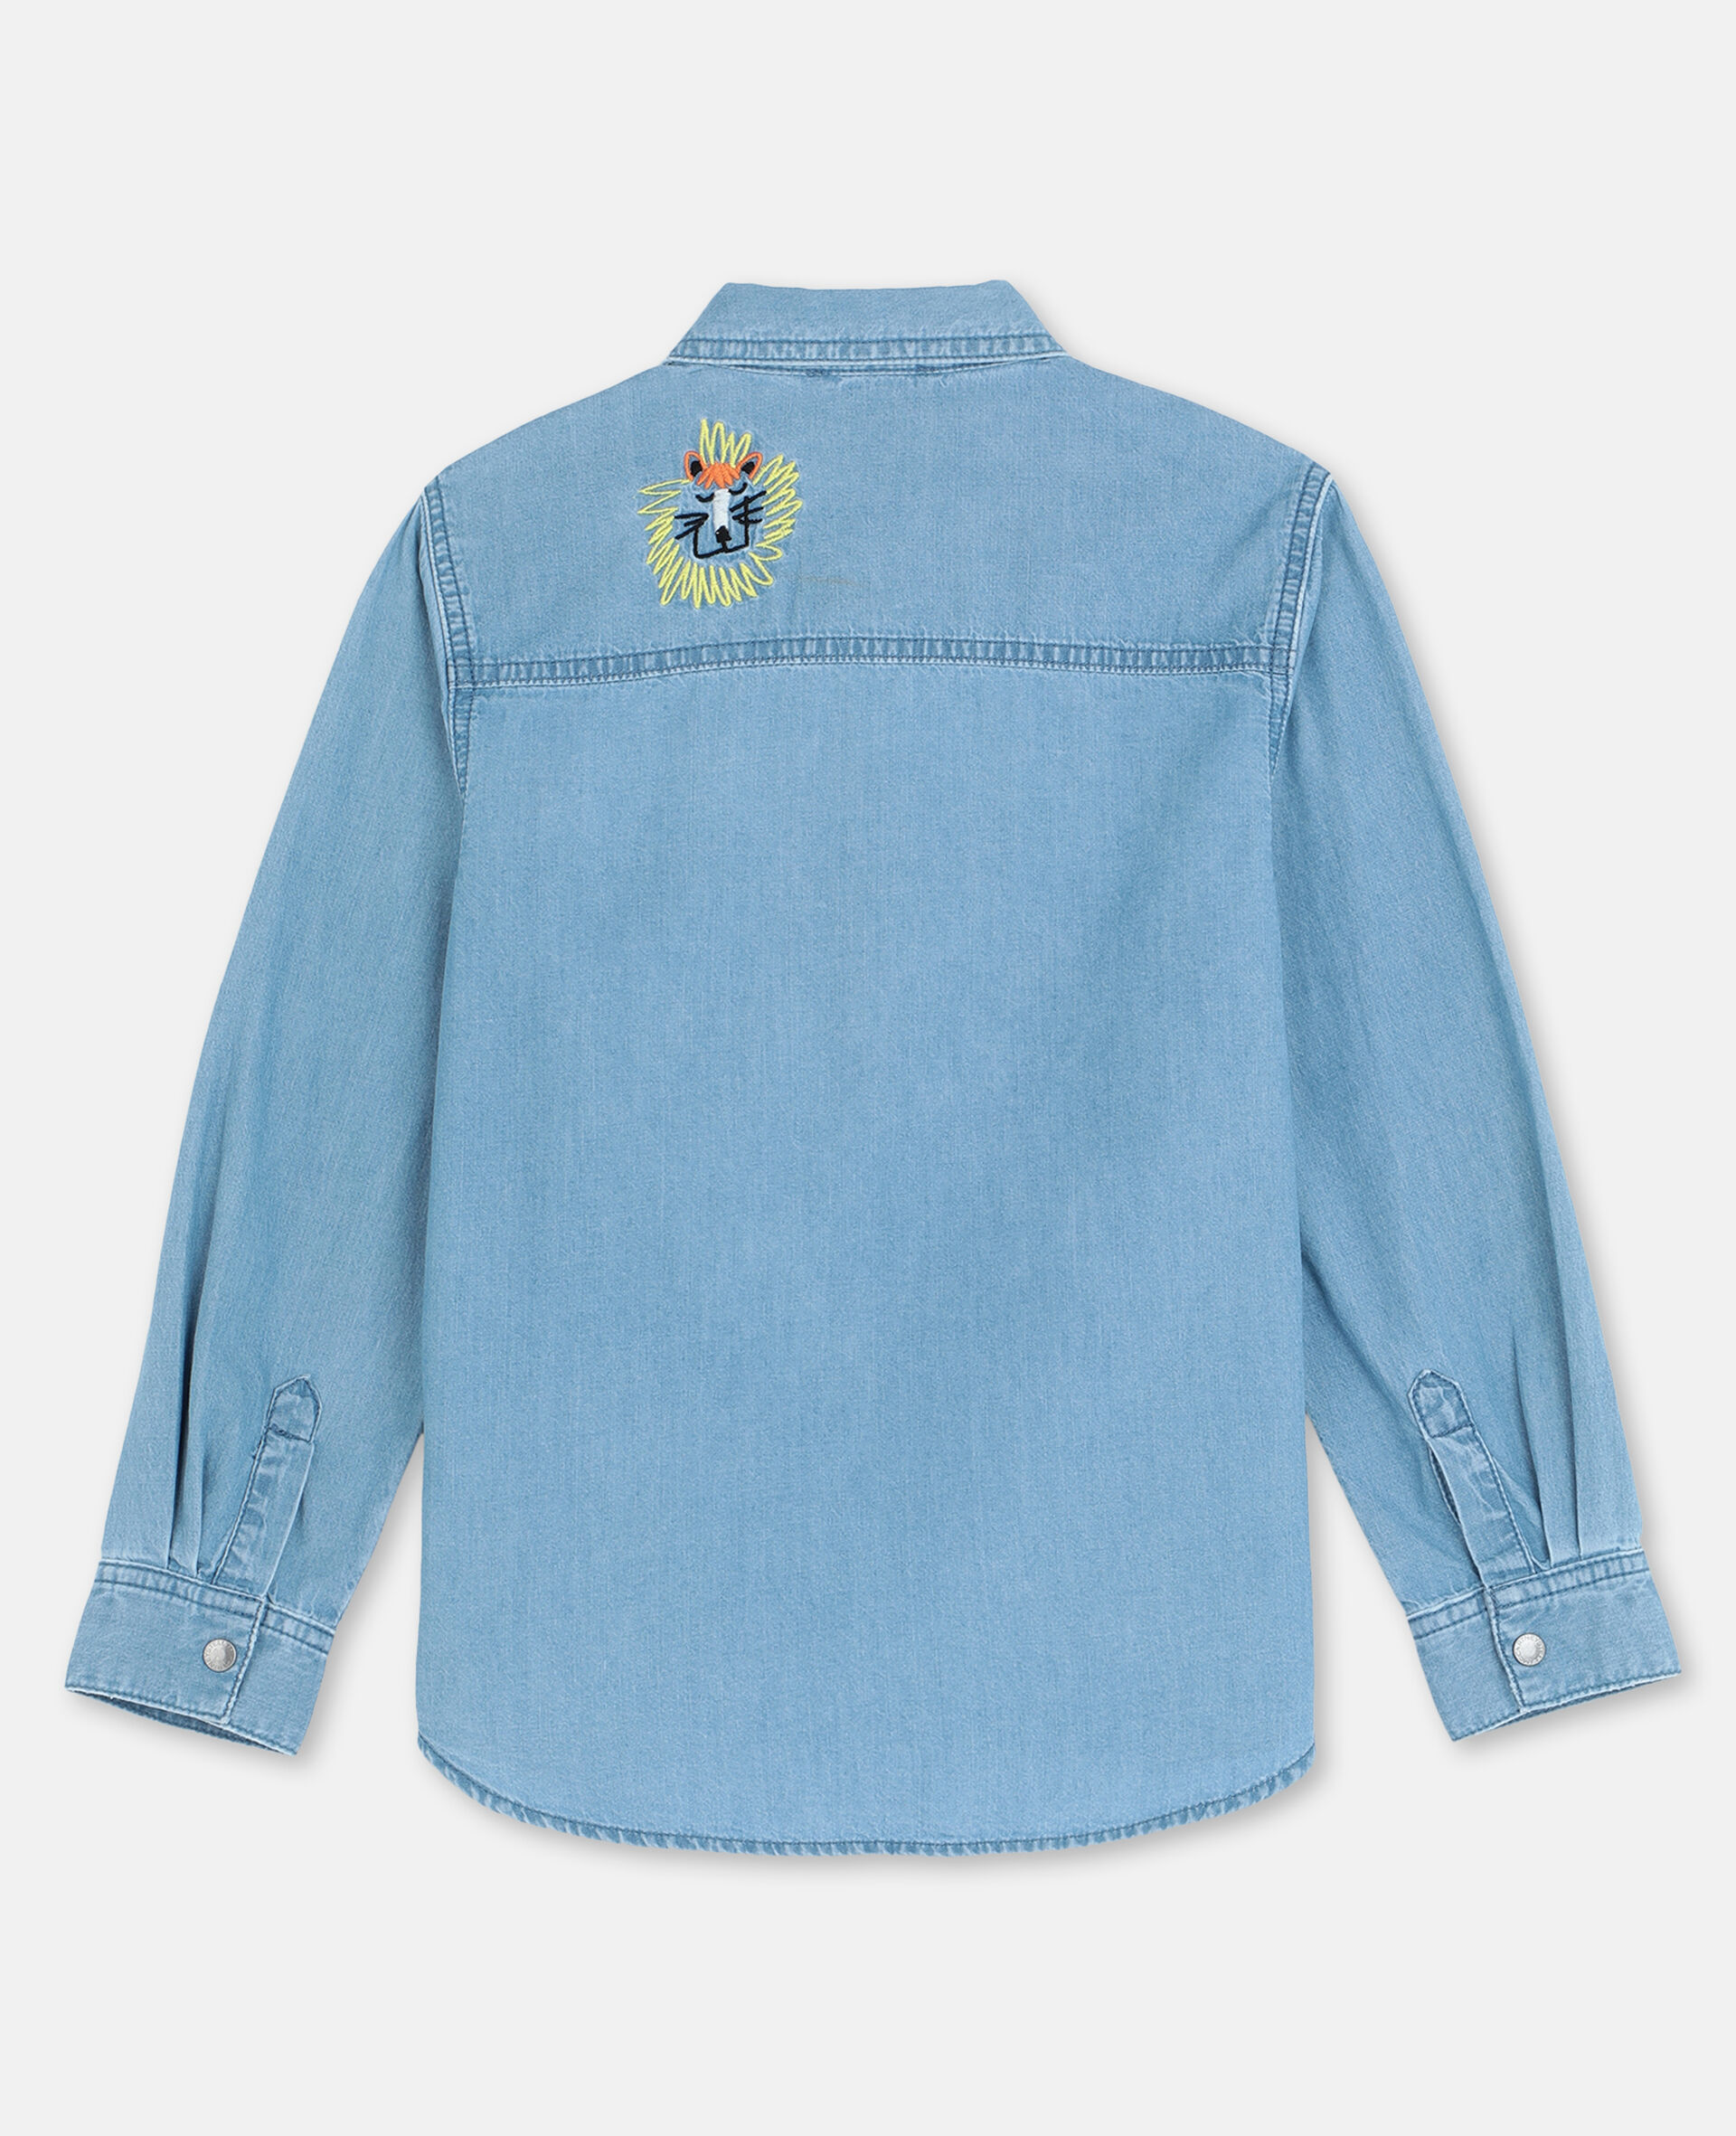 Embroidered Cats Cotton Chambray Shirt -Blue-large image number 3